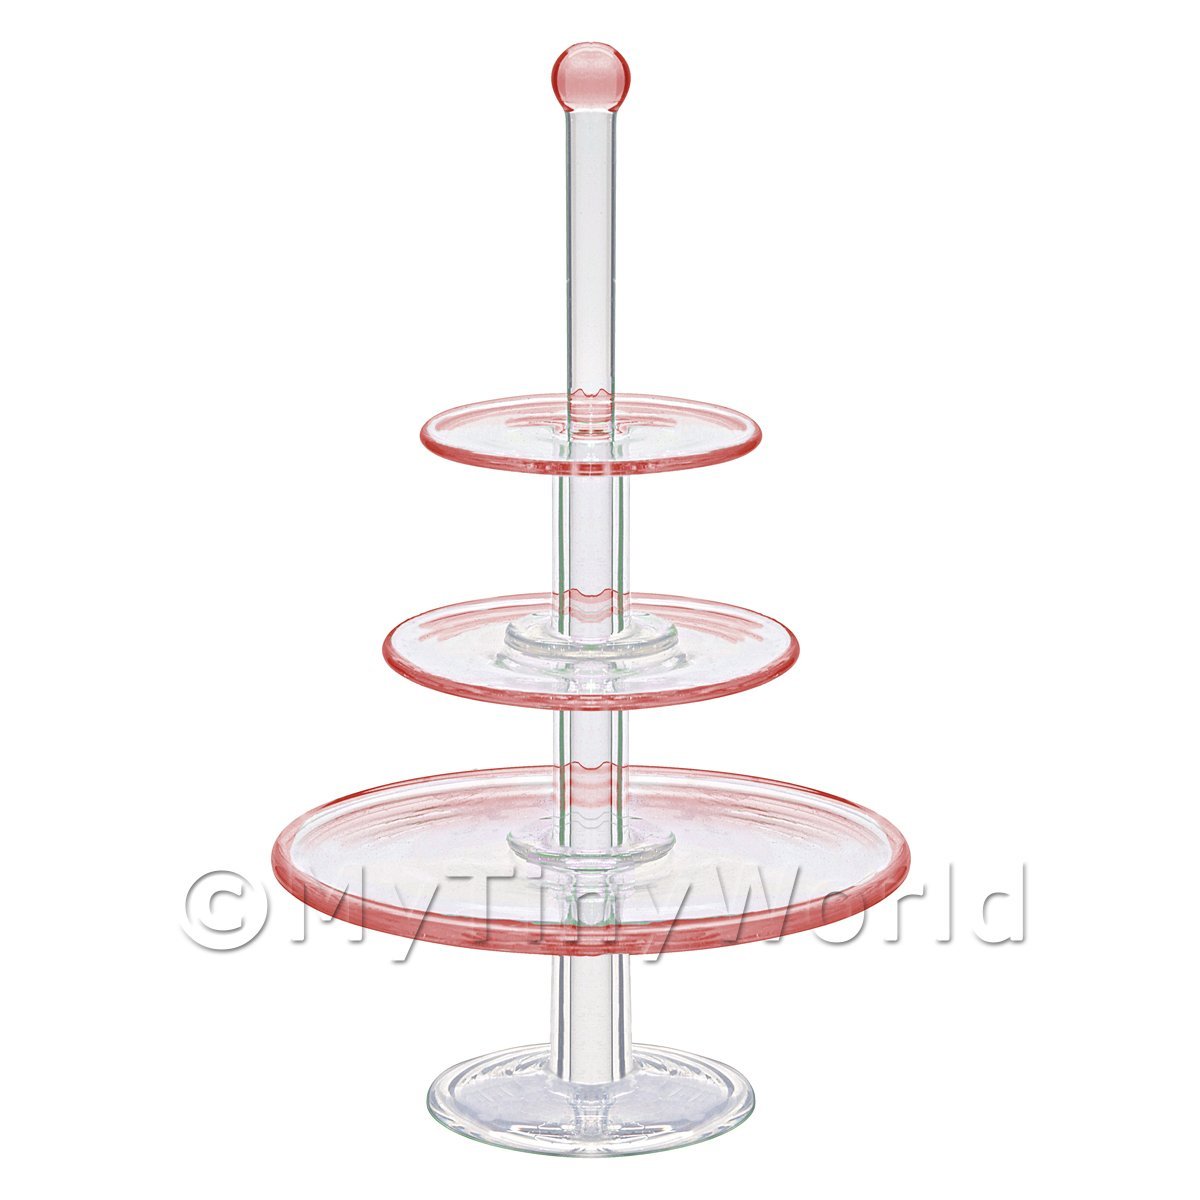 Dolls house Miniature Handmade 3 Tier Brown Glass Cake Stand